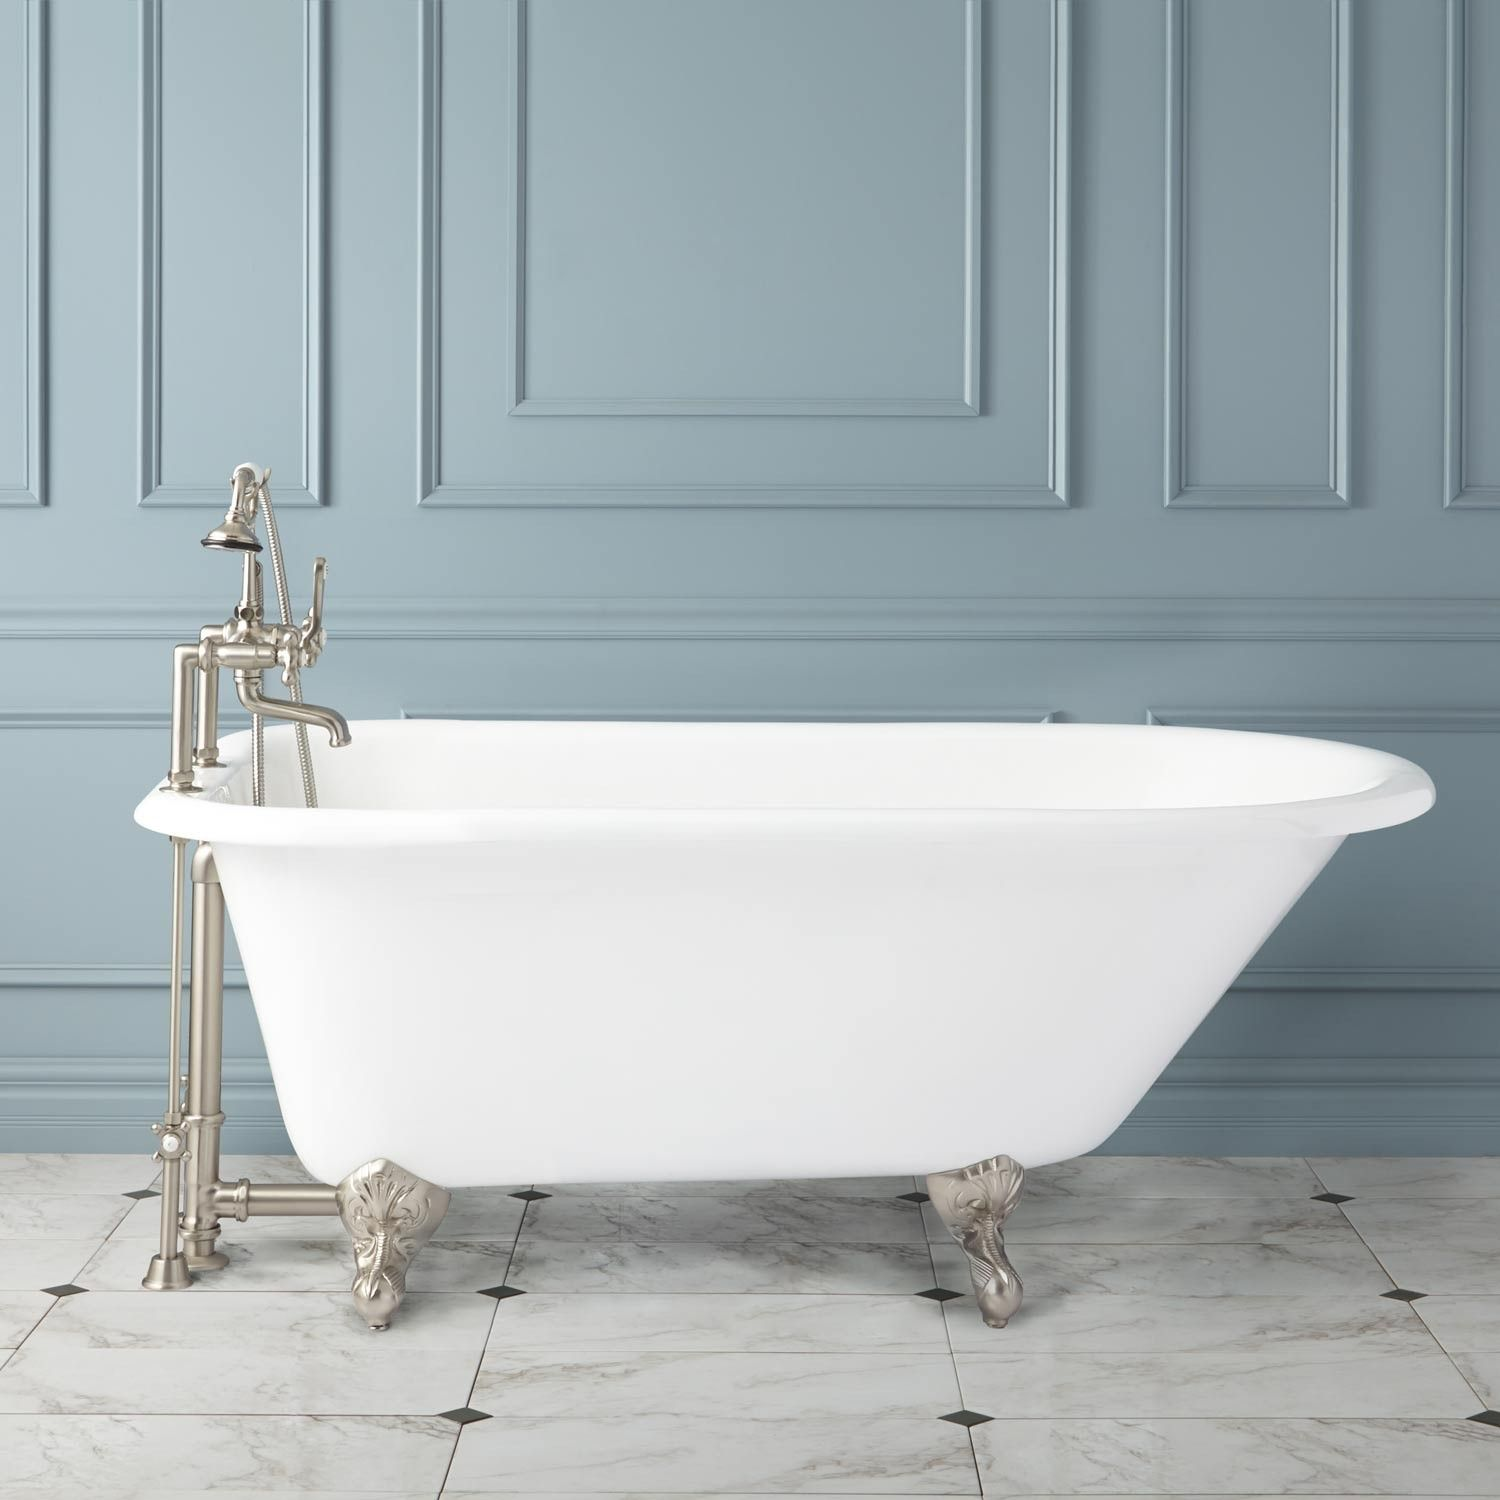 Celine Cast Iron Clawfoot Tub 1 189 00 57in 1 229 00 61in